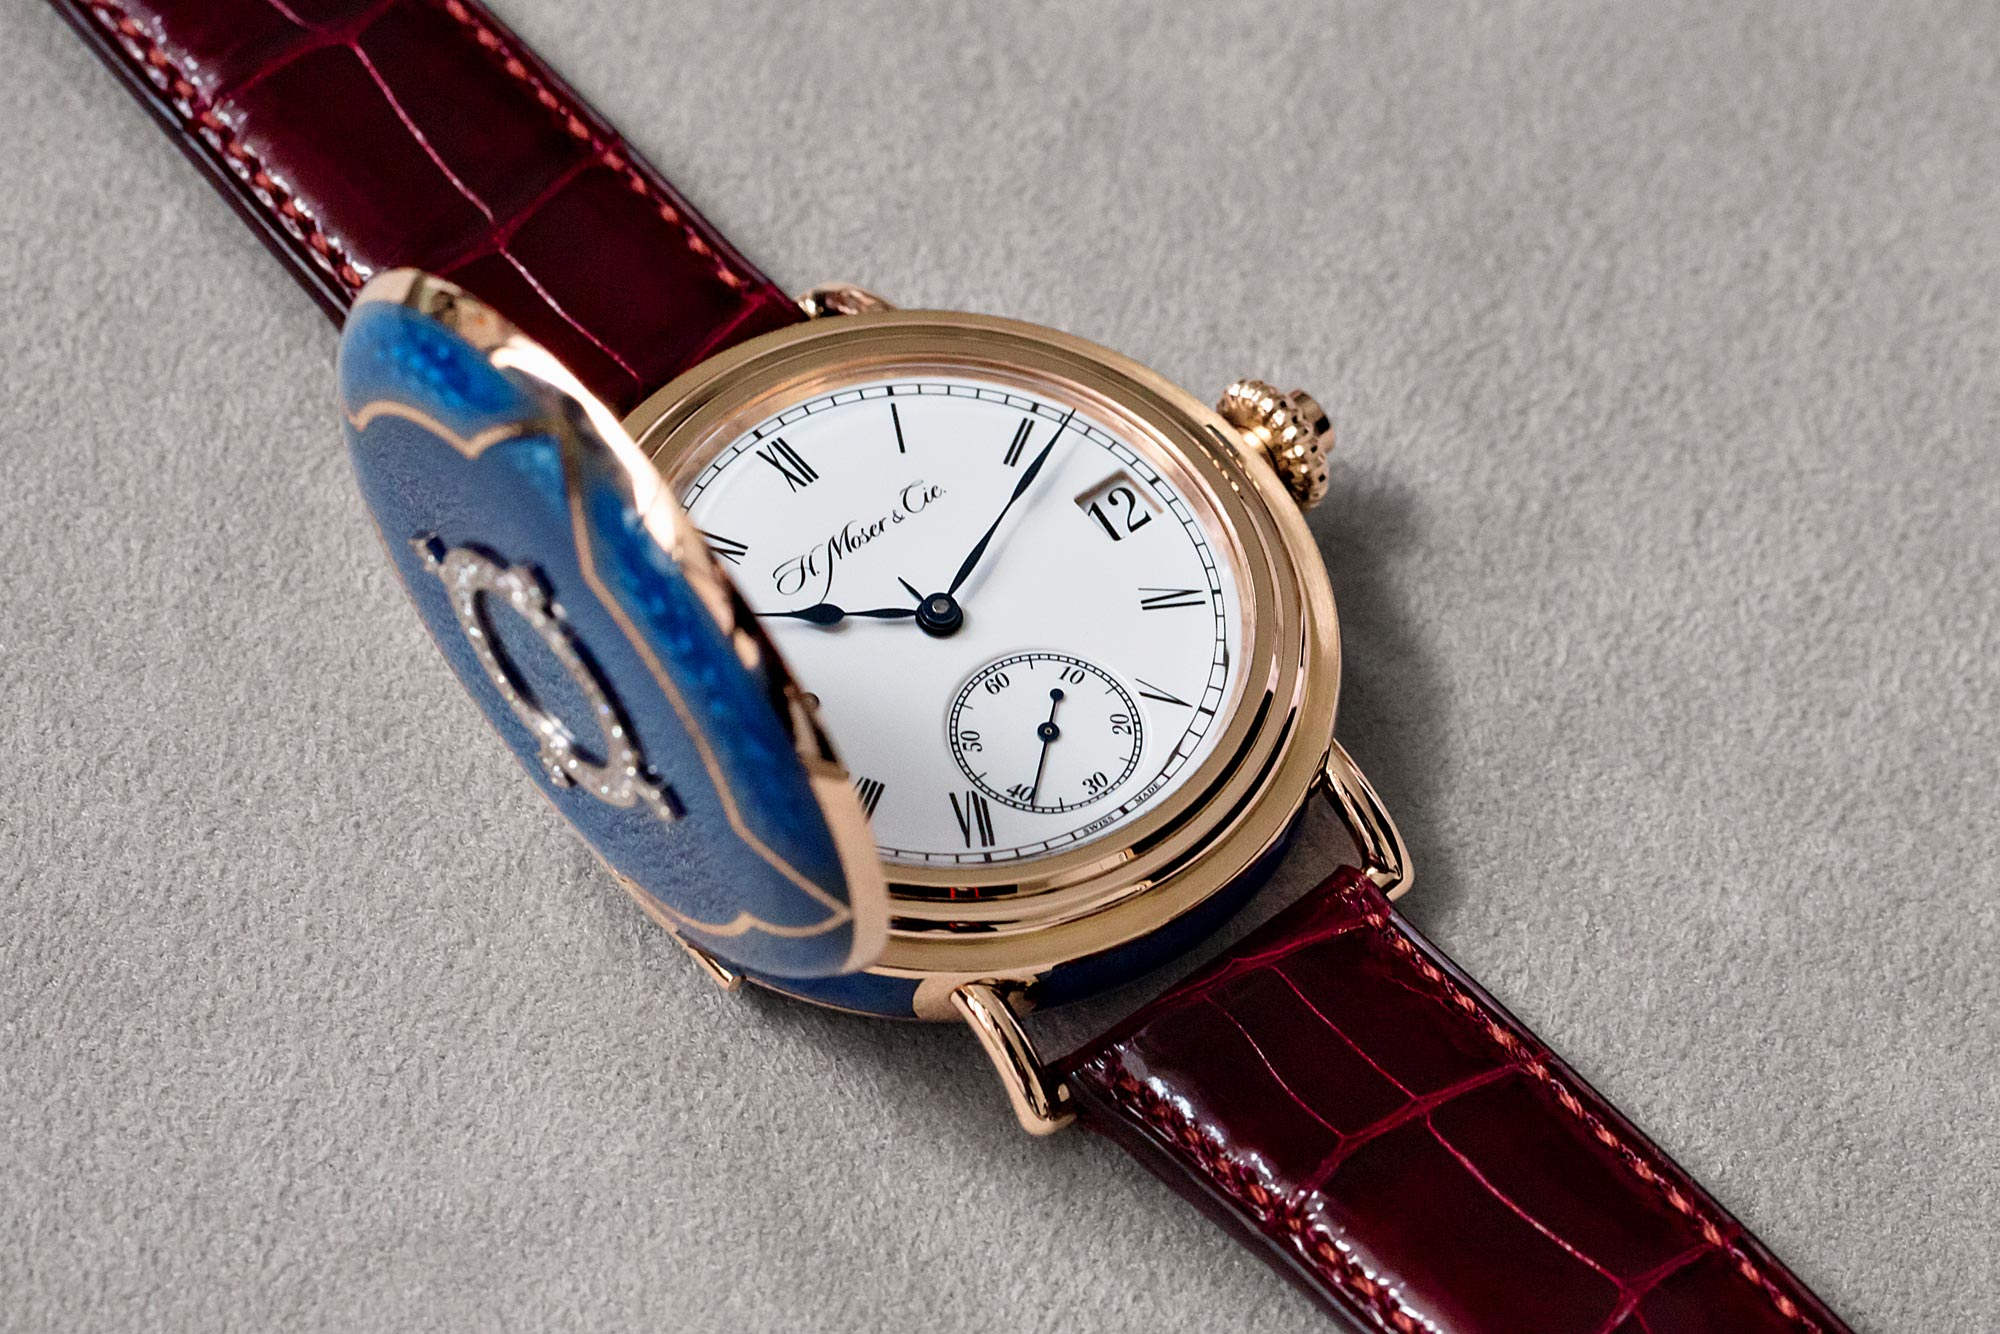 H. Moser & Cie Perpetual Calendar Heritage Limited Edition